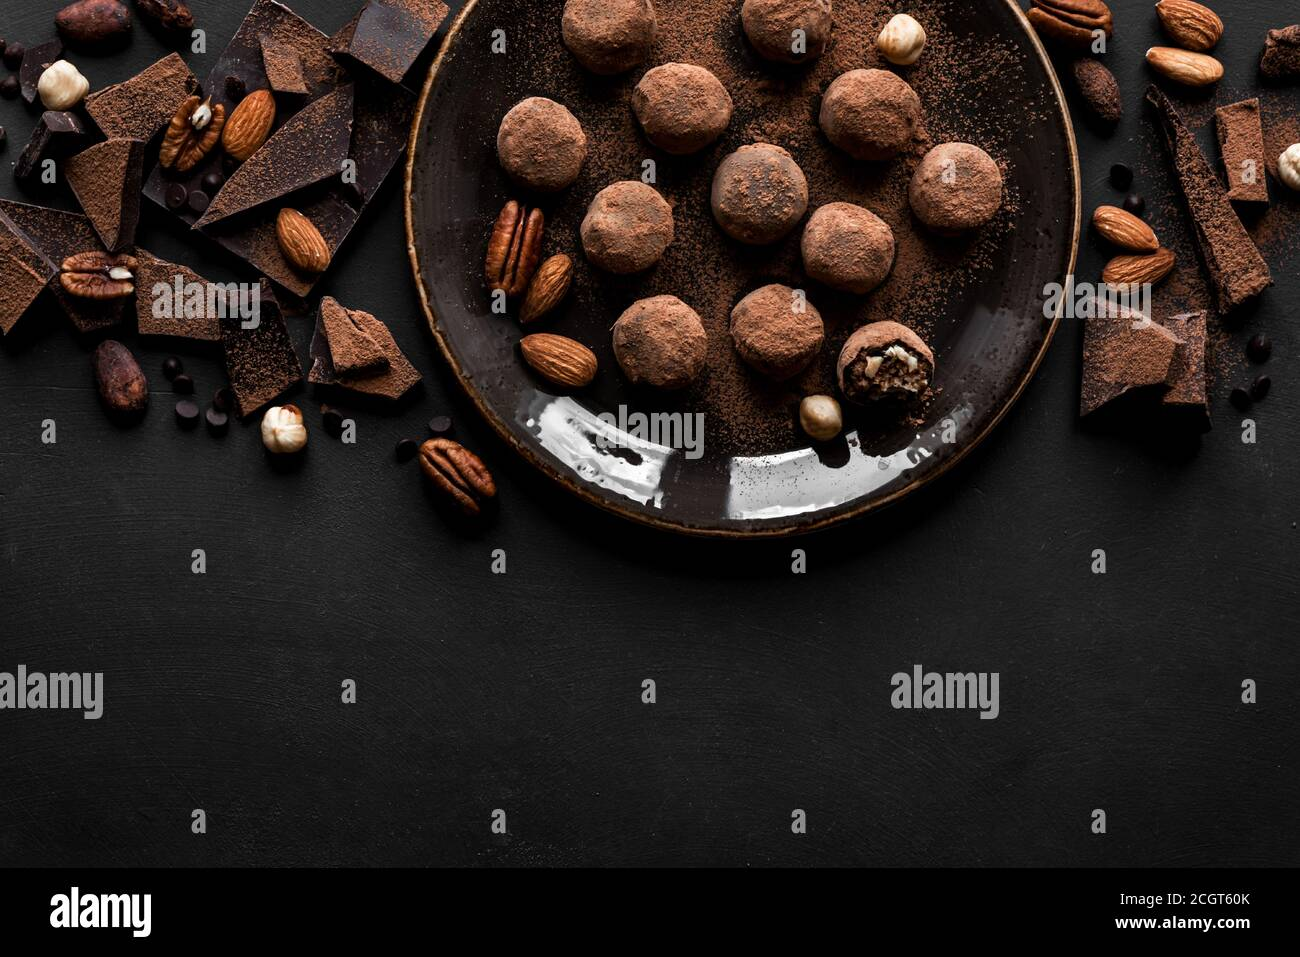 Chocolate truffles with dark chocolate and nuts on black background, top view, copy space. Vegan homemade chocolate energy balls or truffles for desse Stock Photo